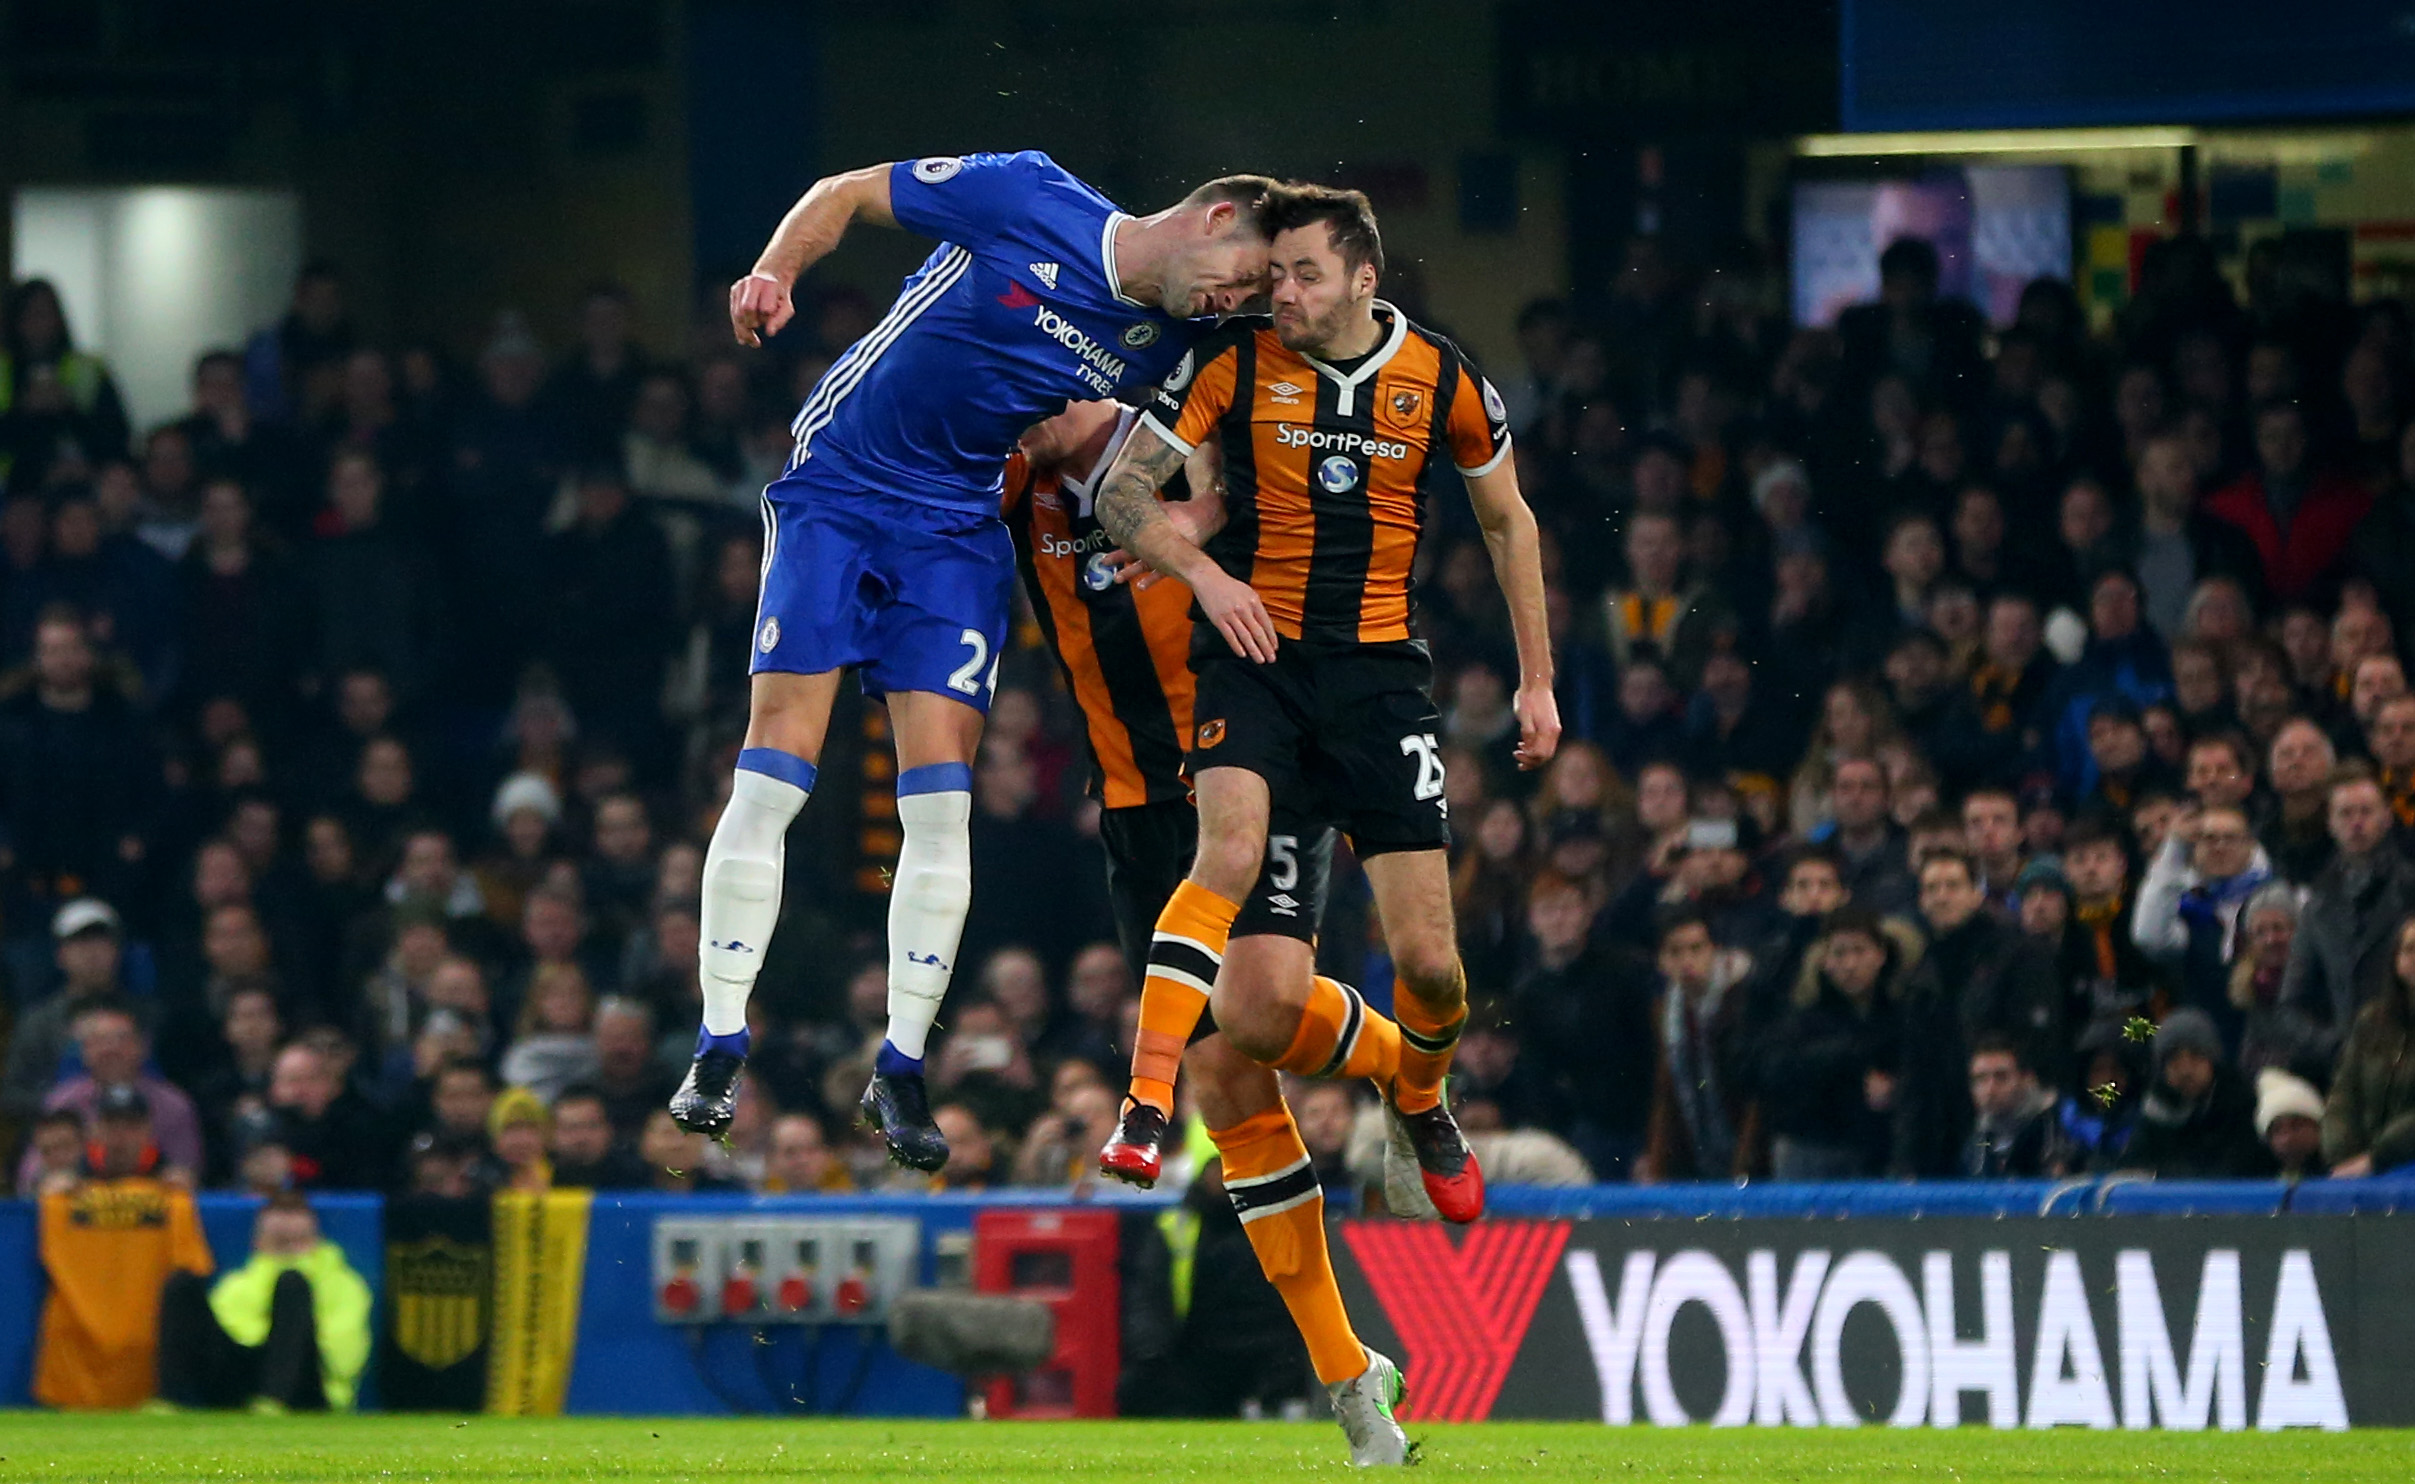 Hull City midfielder Ryan Mason 'stable' after suffering fractured skull in sickening clash of heads